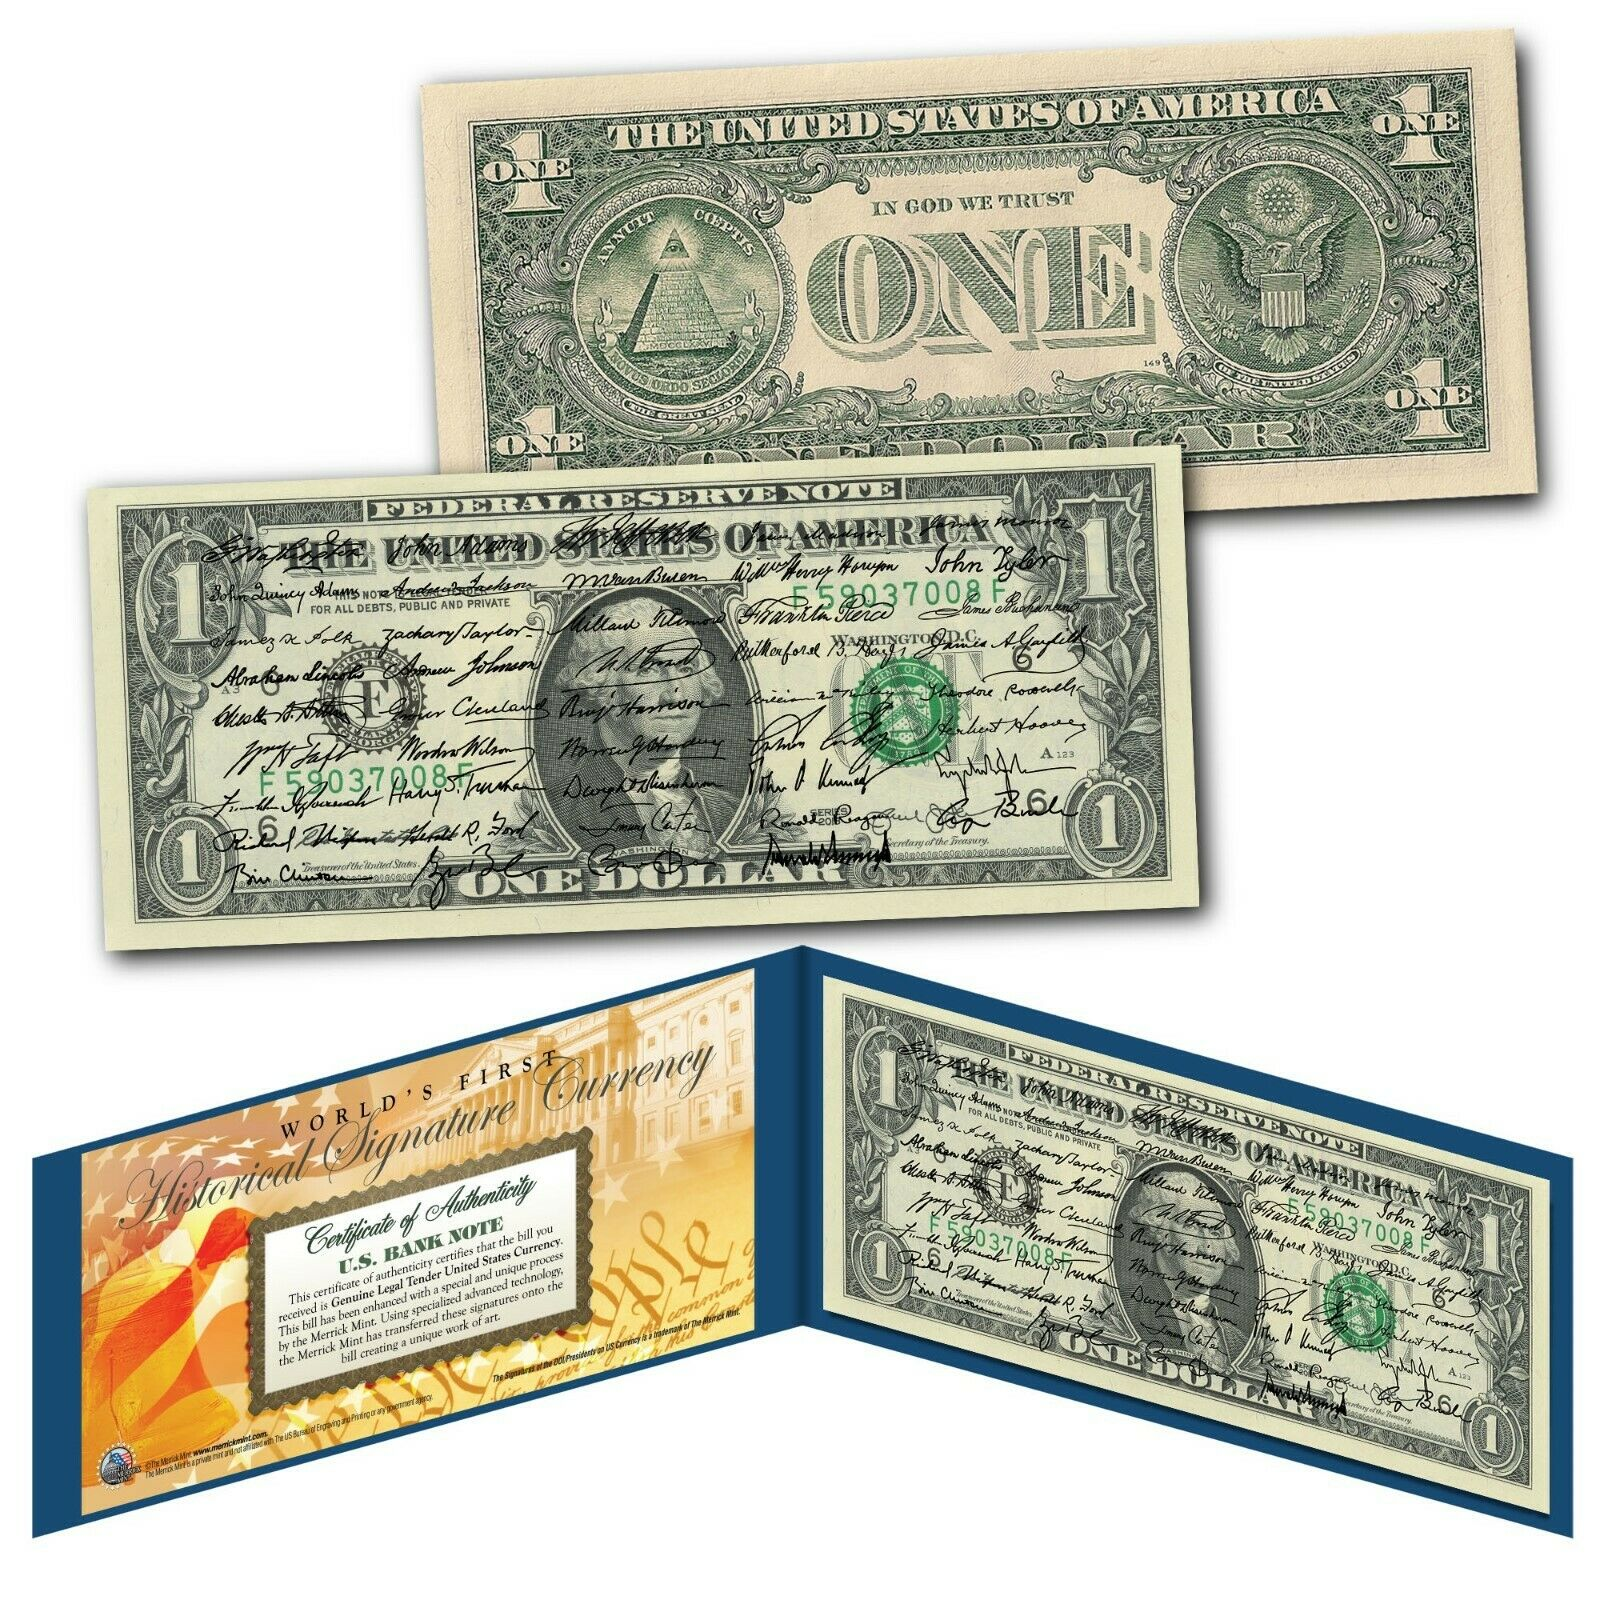 ALL 45 U.S. PRESIDENT SIGNATURES Genuine Legal Tender US $1 Bill - World's First 1